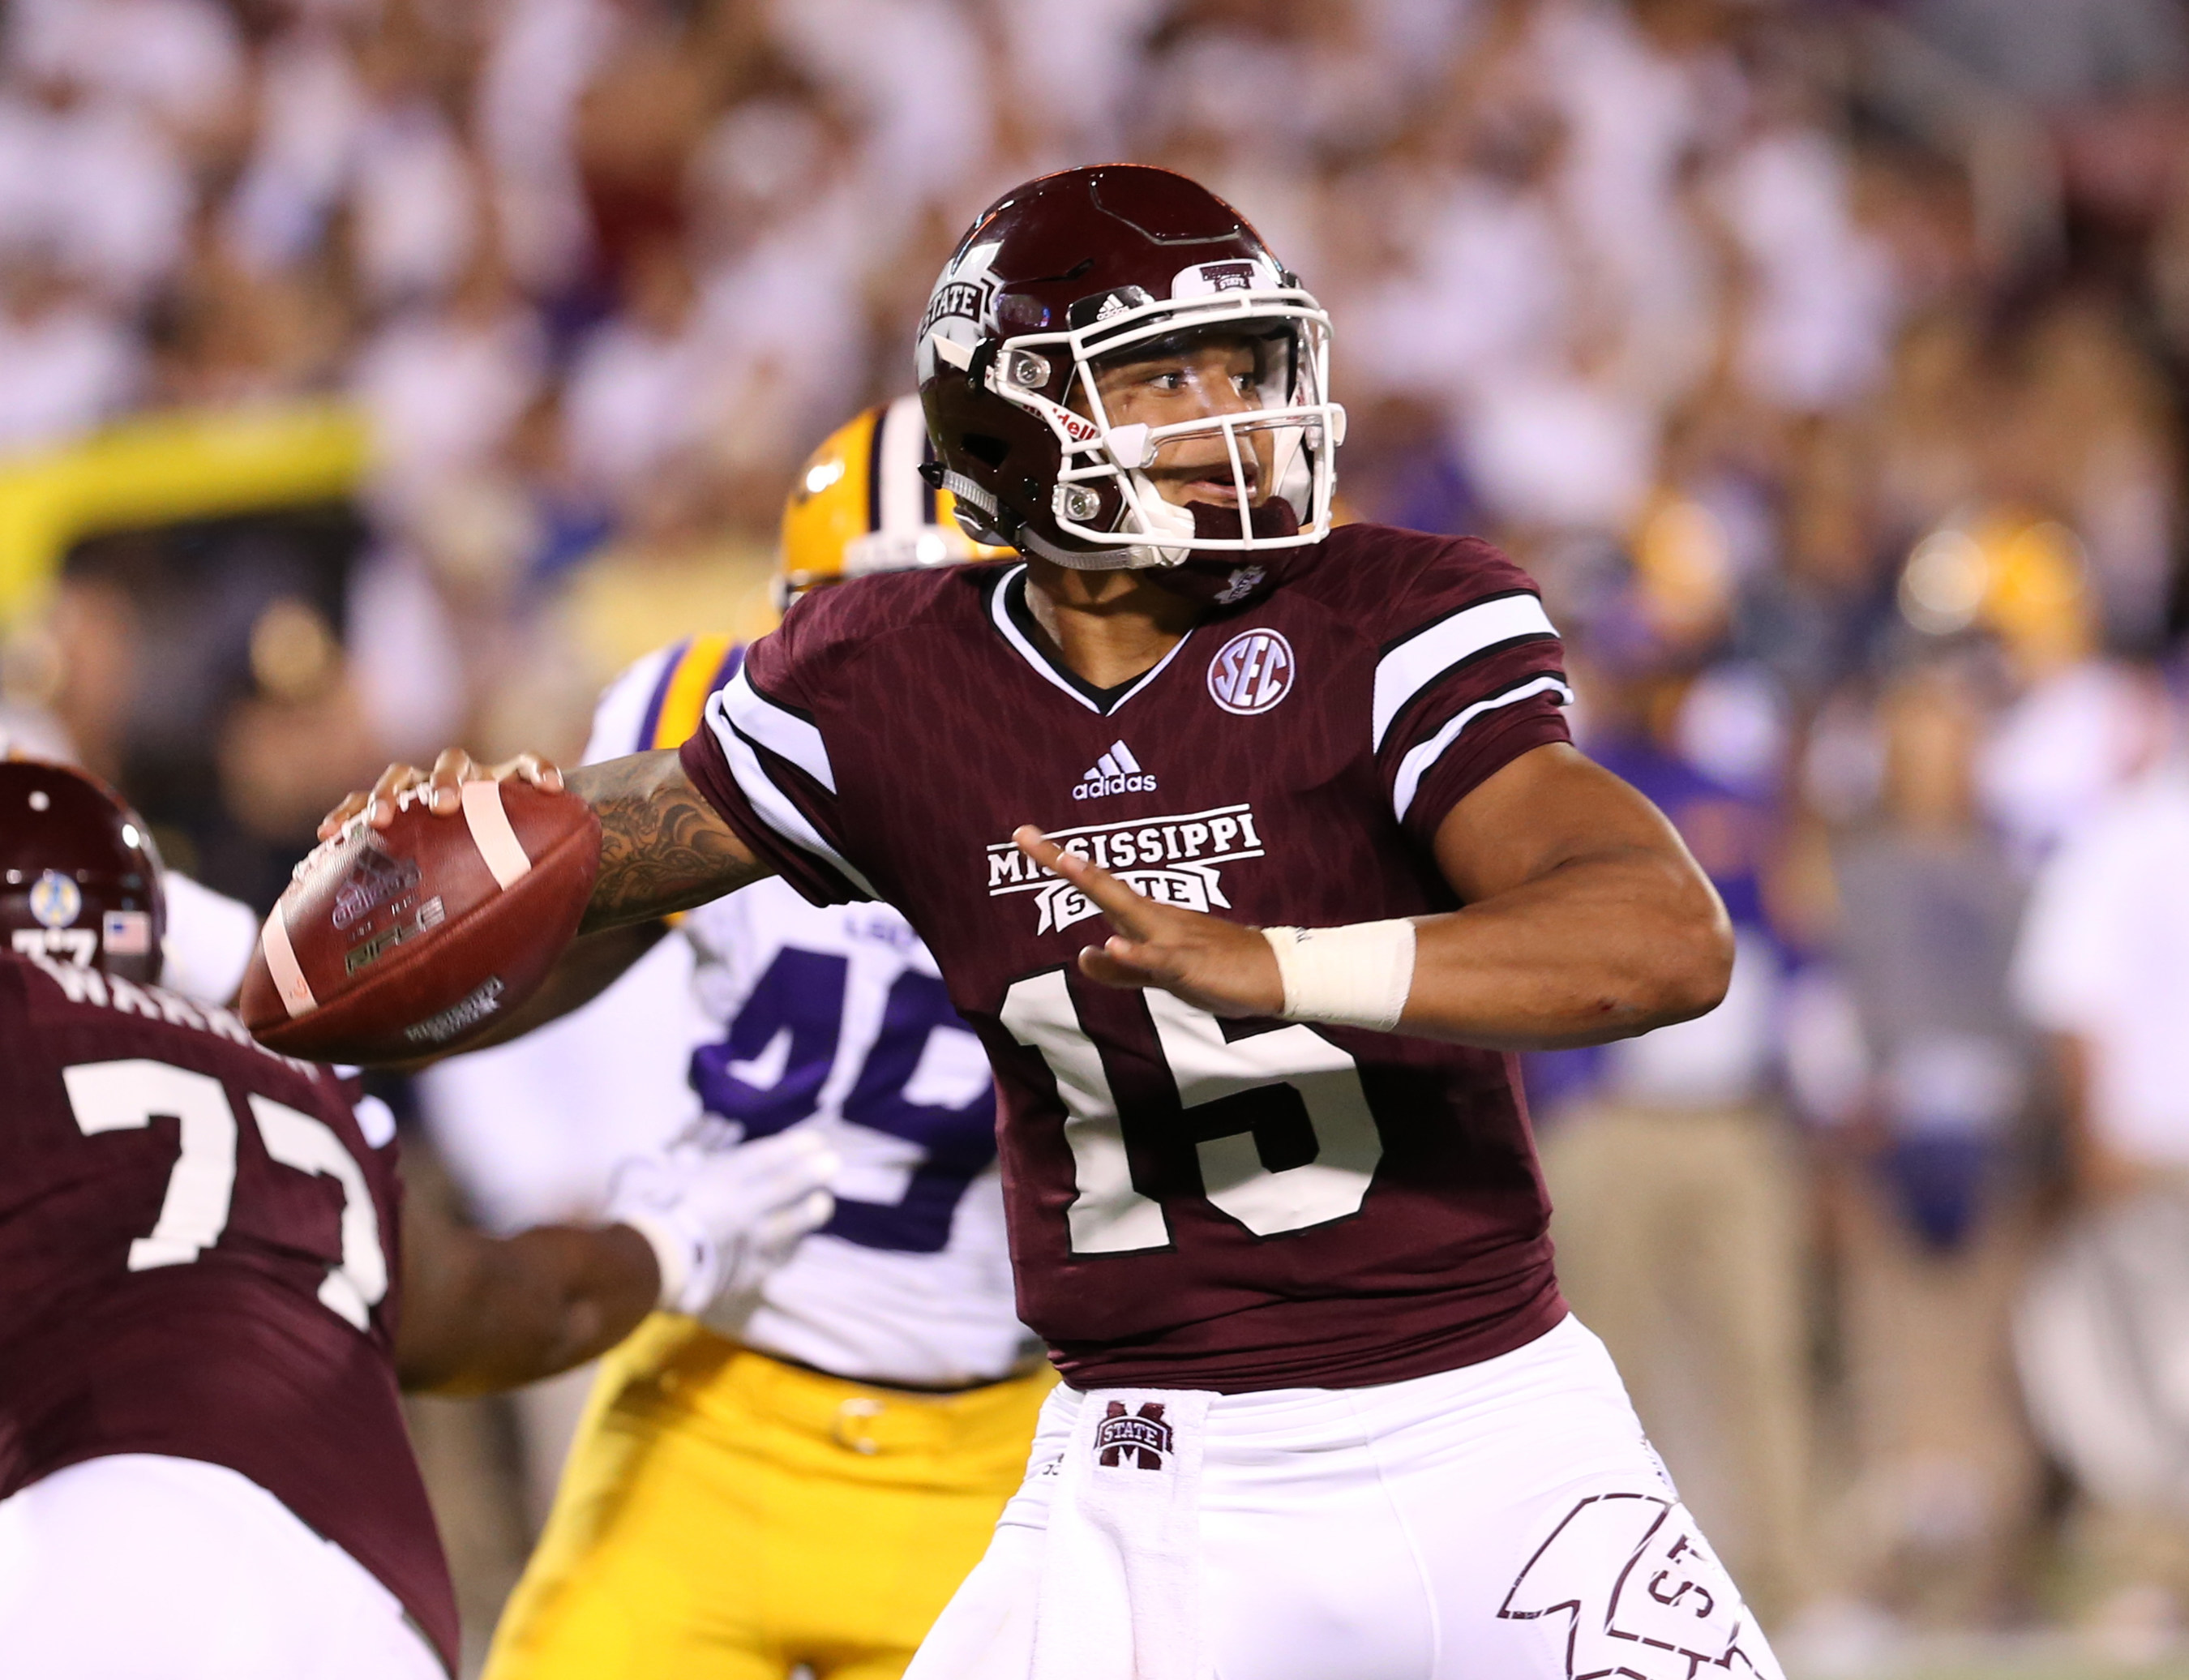 Mississippi State's Dak Prescott wins C Spire Conerly Trophy as best college football player in Magnolia State during 2015